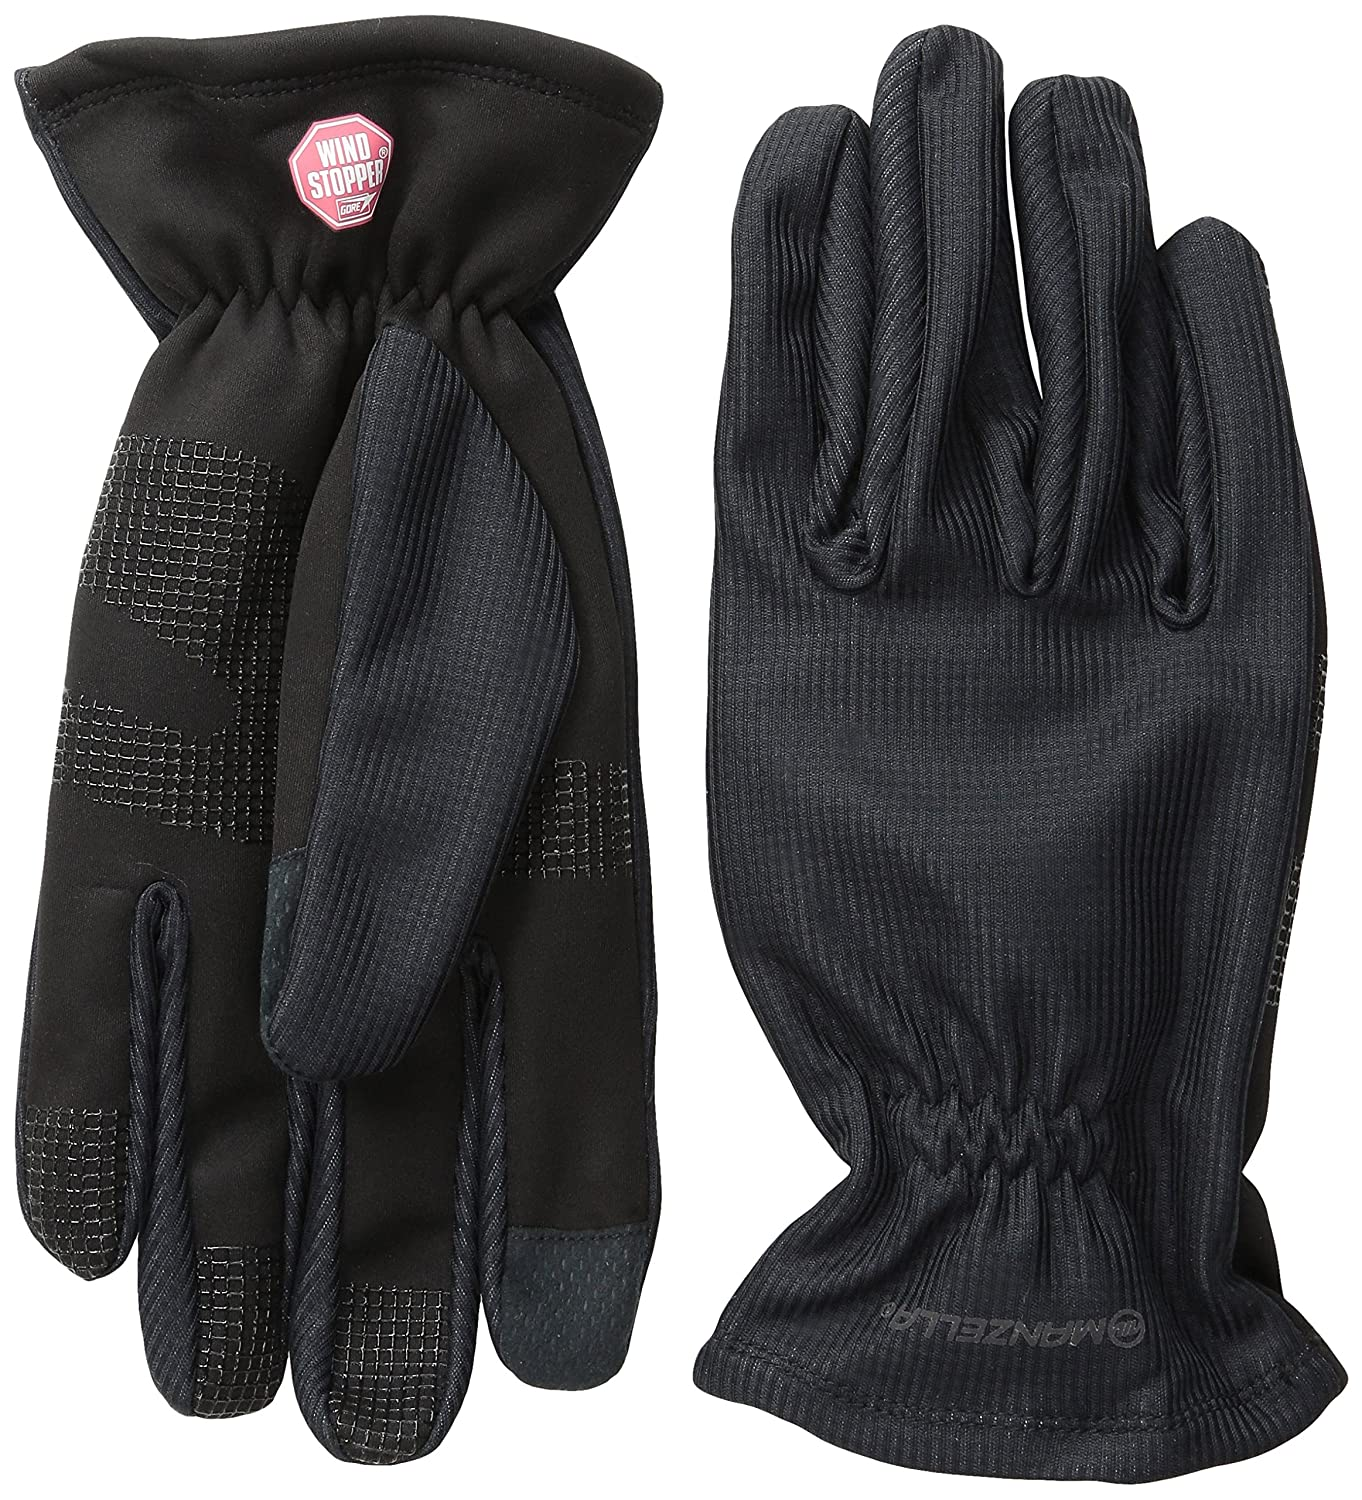 Manzella Men's Silkweight Windstopper Ultra Touch Gloves, Large, Black Manzella Productions Inc. O618M